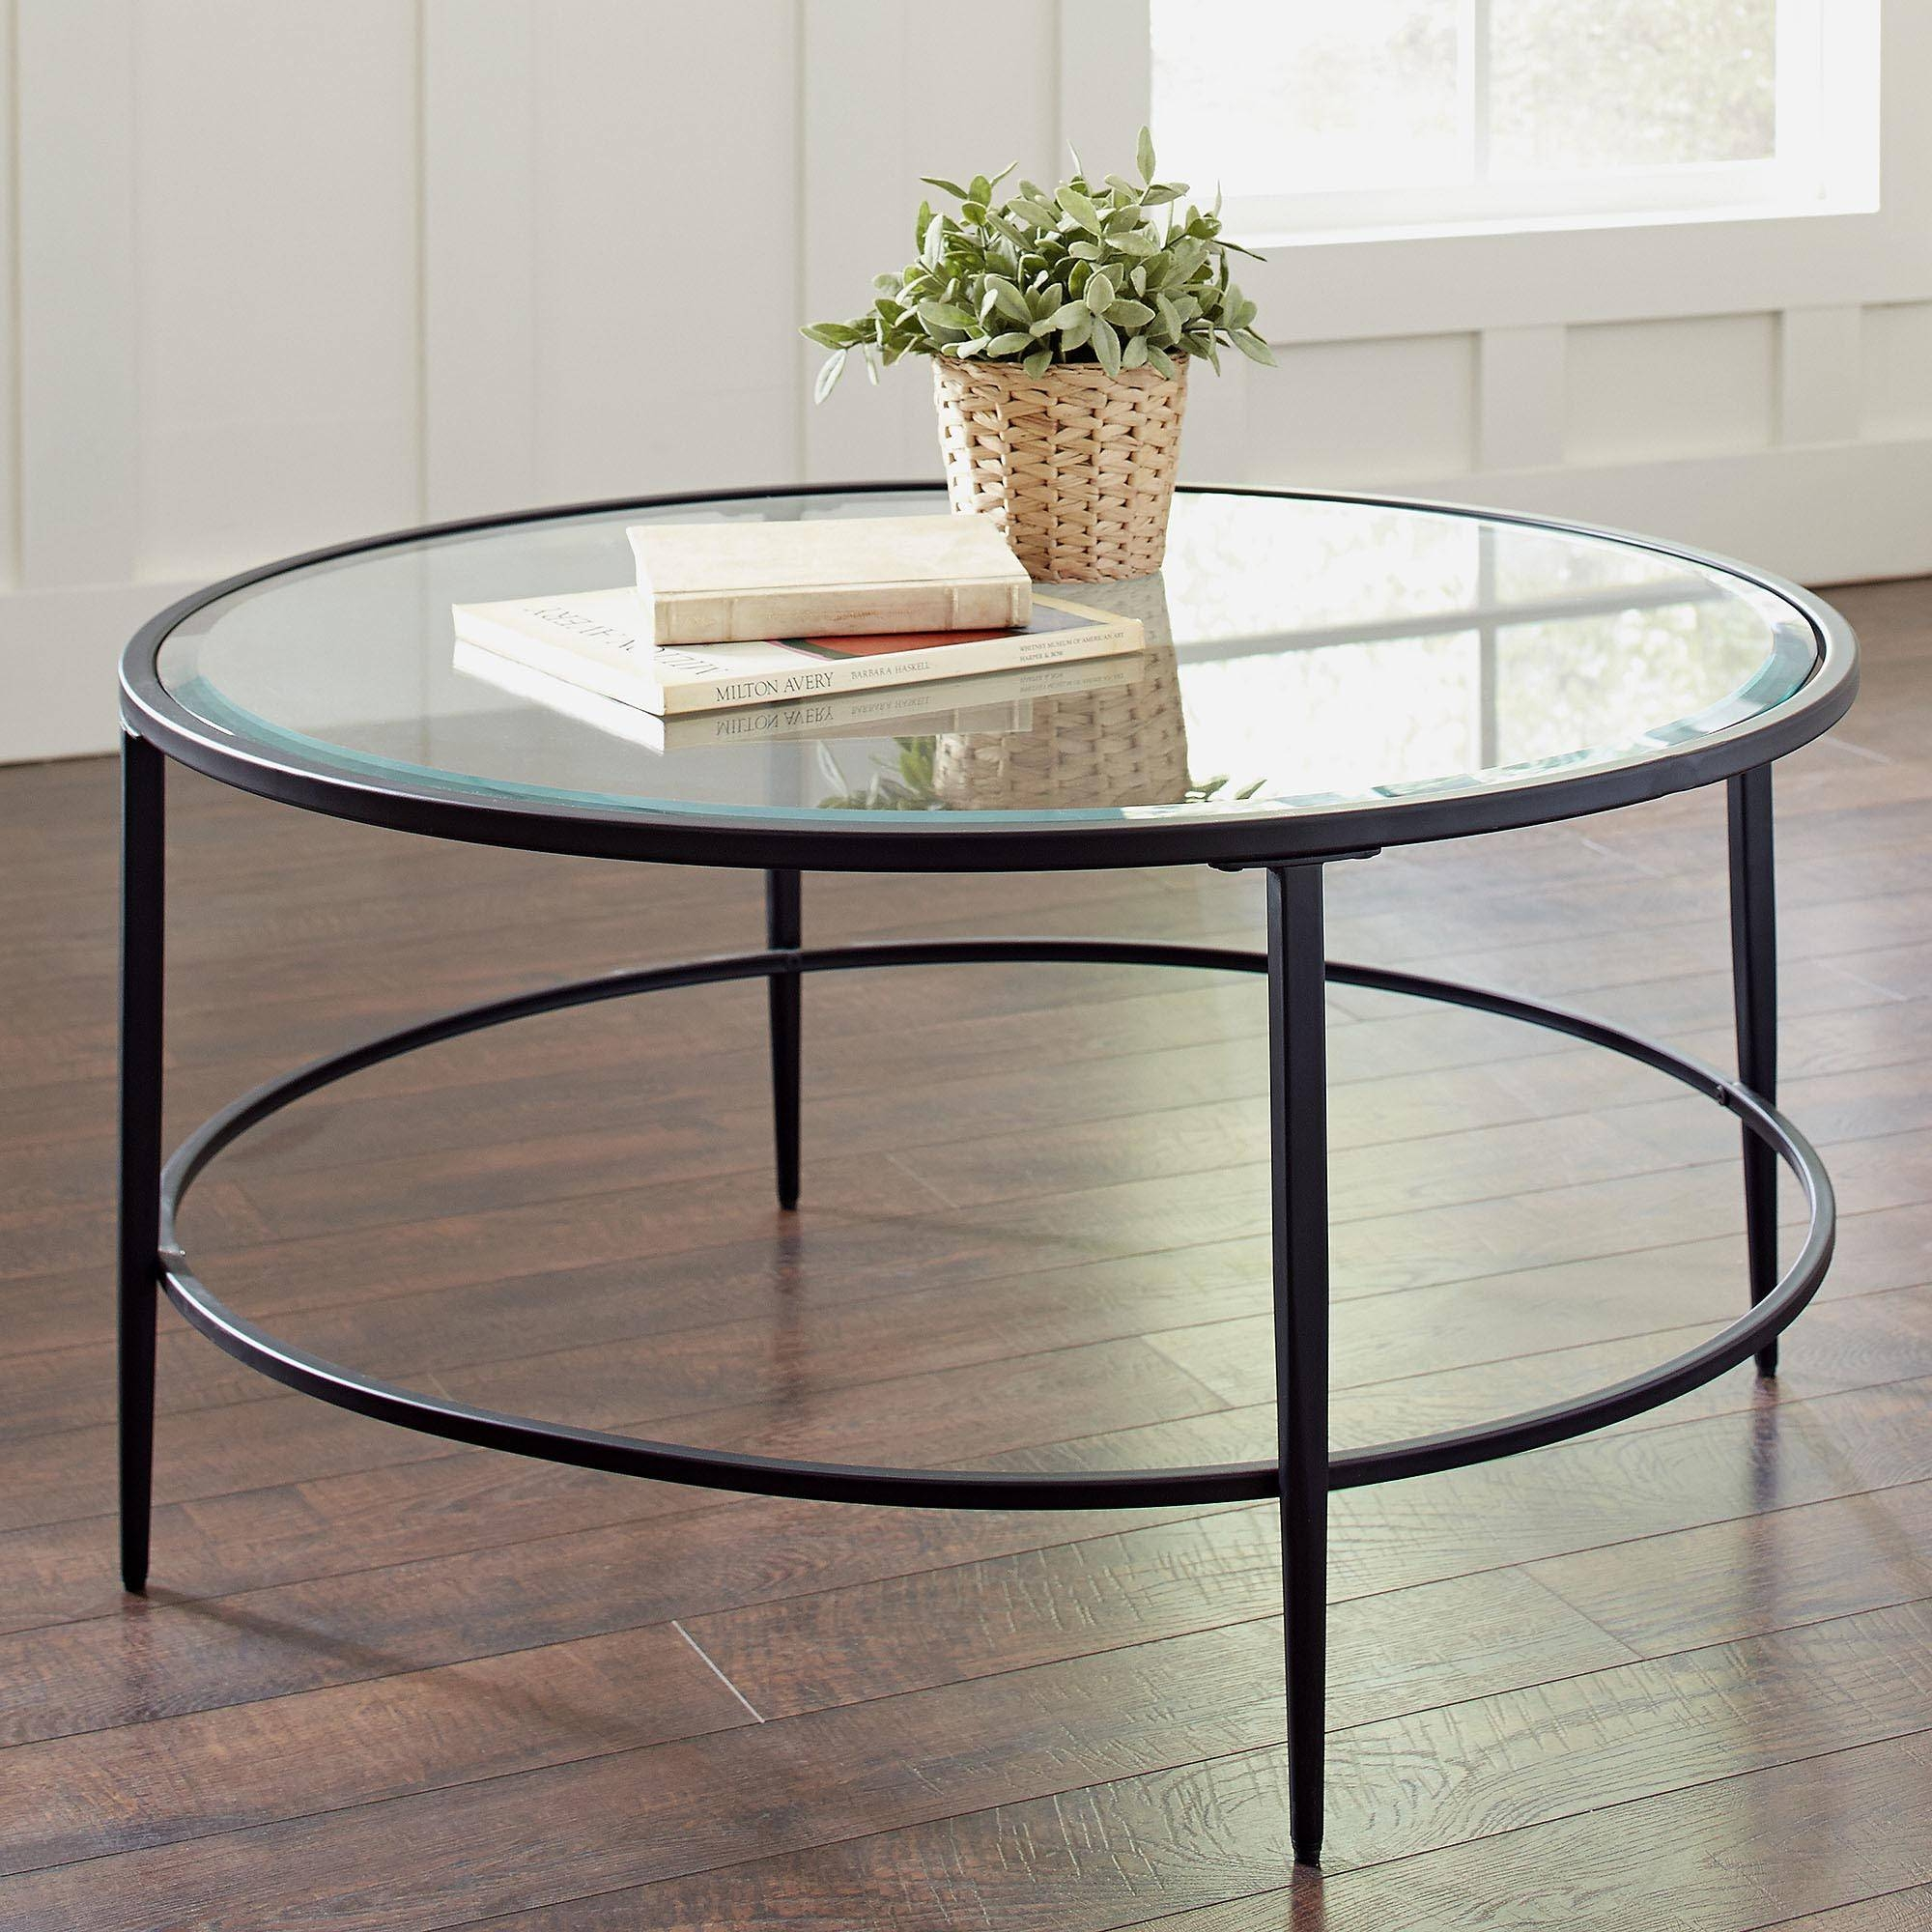 Coffee Table: Enchanting Round Glass Coffee Tables For Sale Round intended for Circle Coffee Tables (Image 11 of 30)